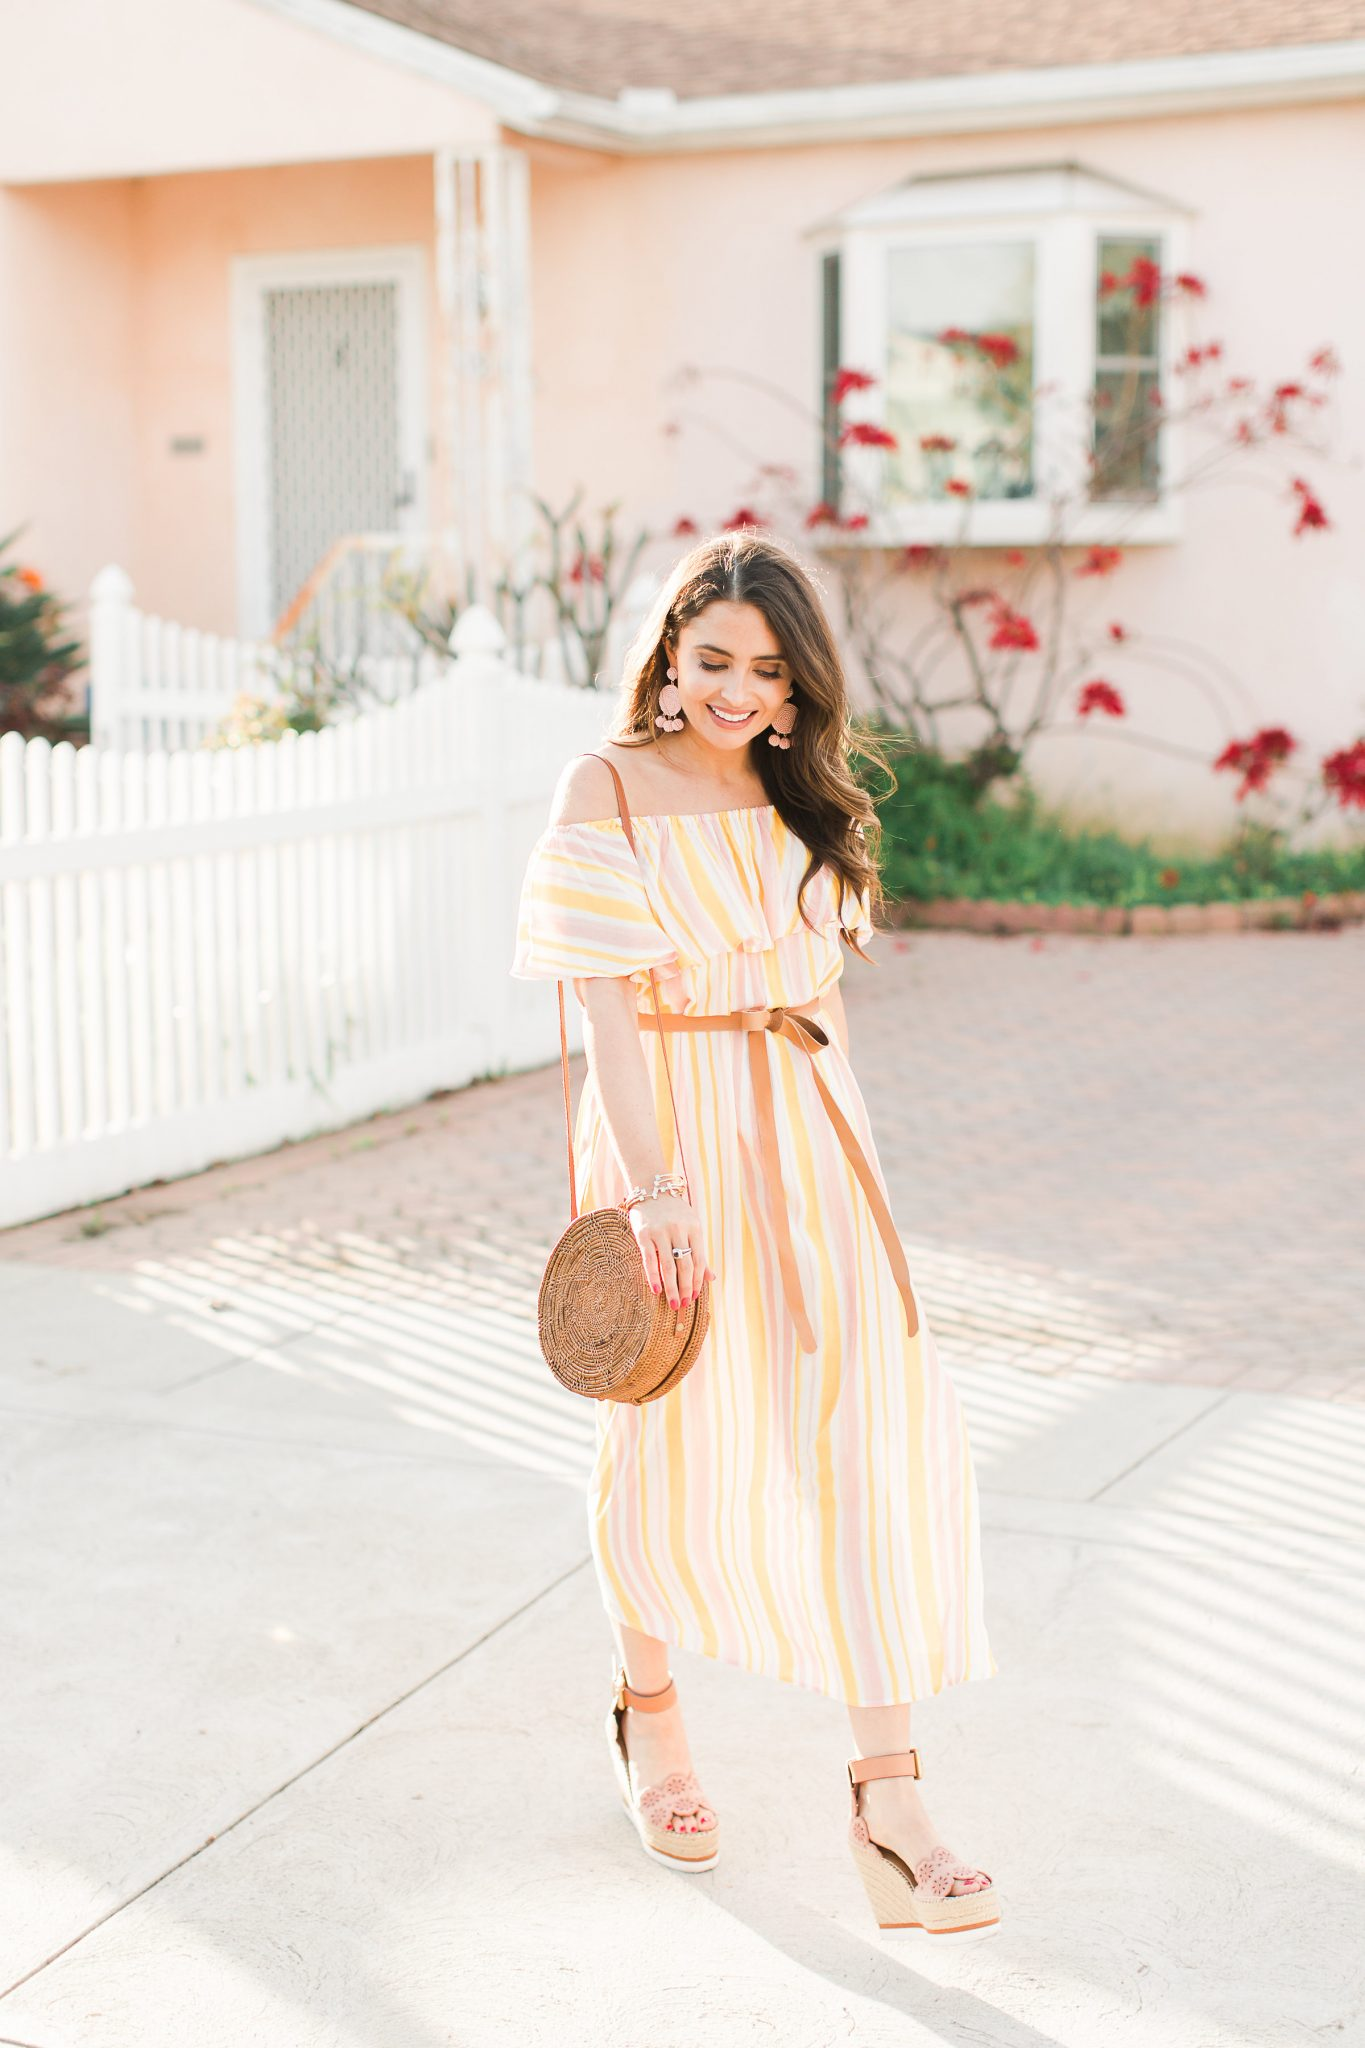 Shopbop Sale Spring Favorites by popular Orange County fashion blogger Maxie Elle